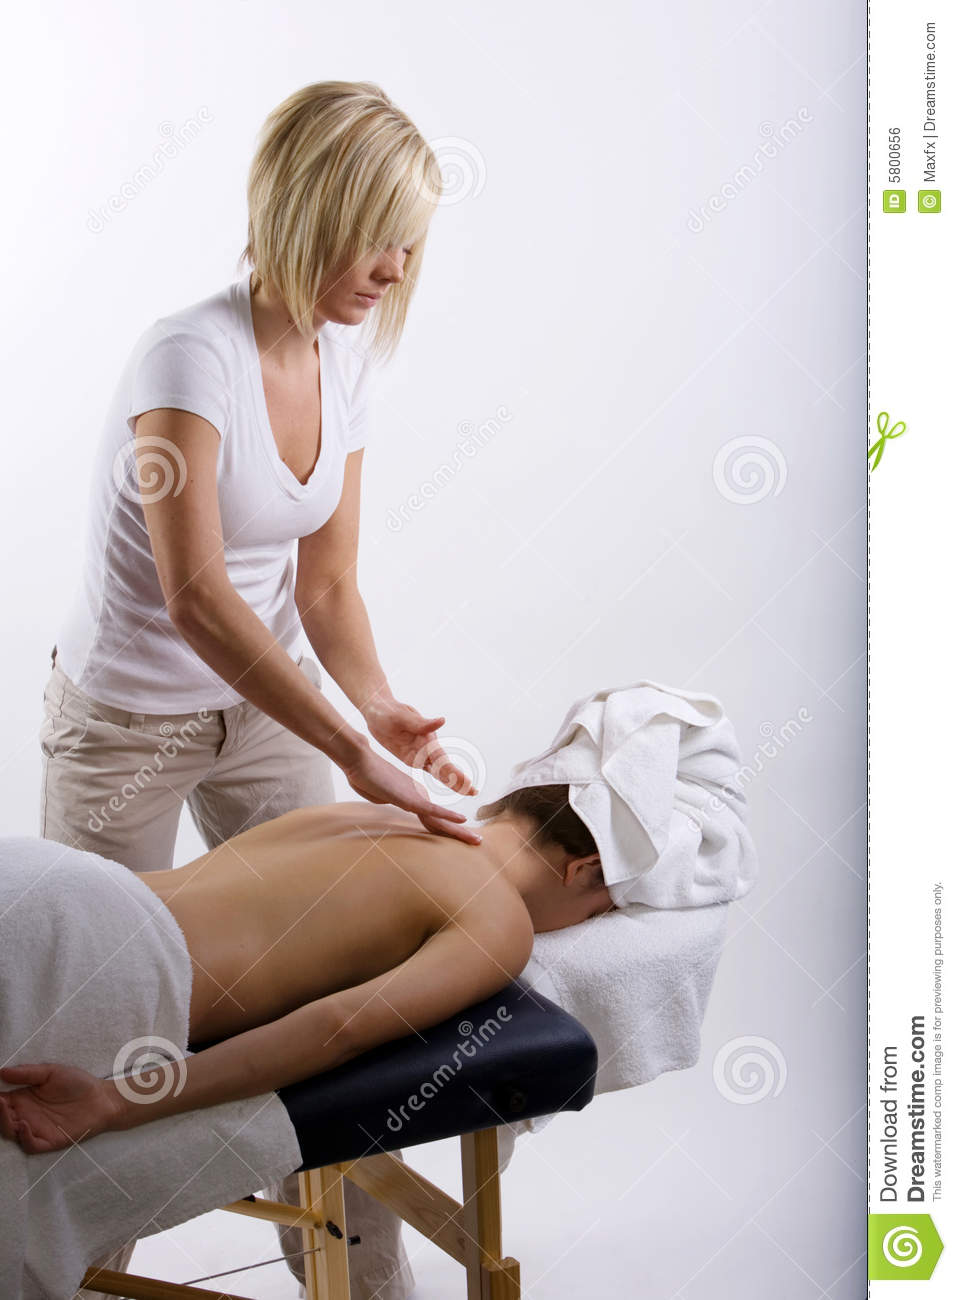 girl getting a massage